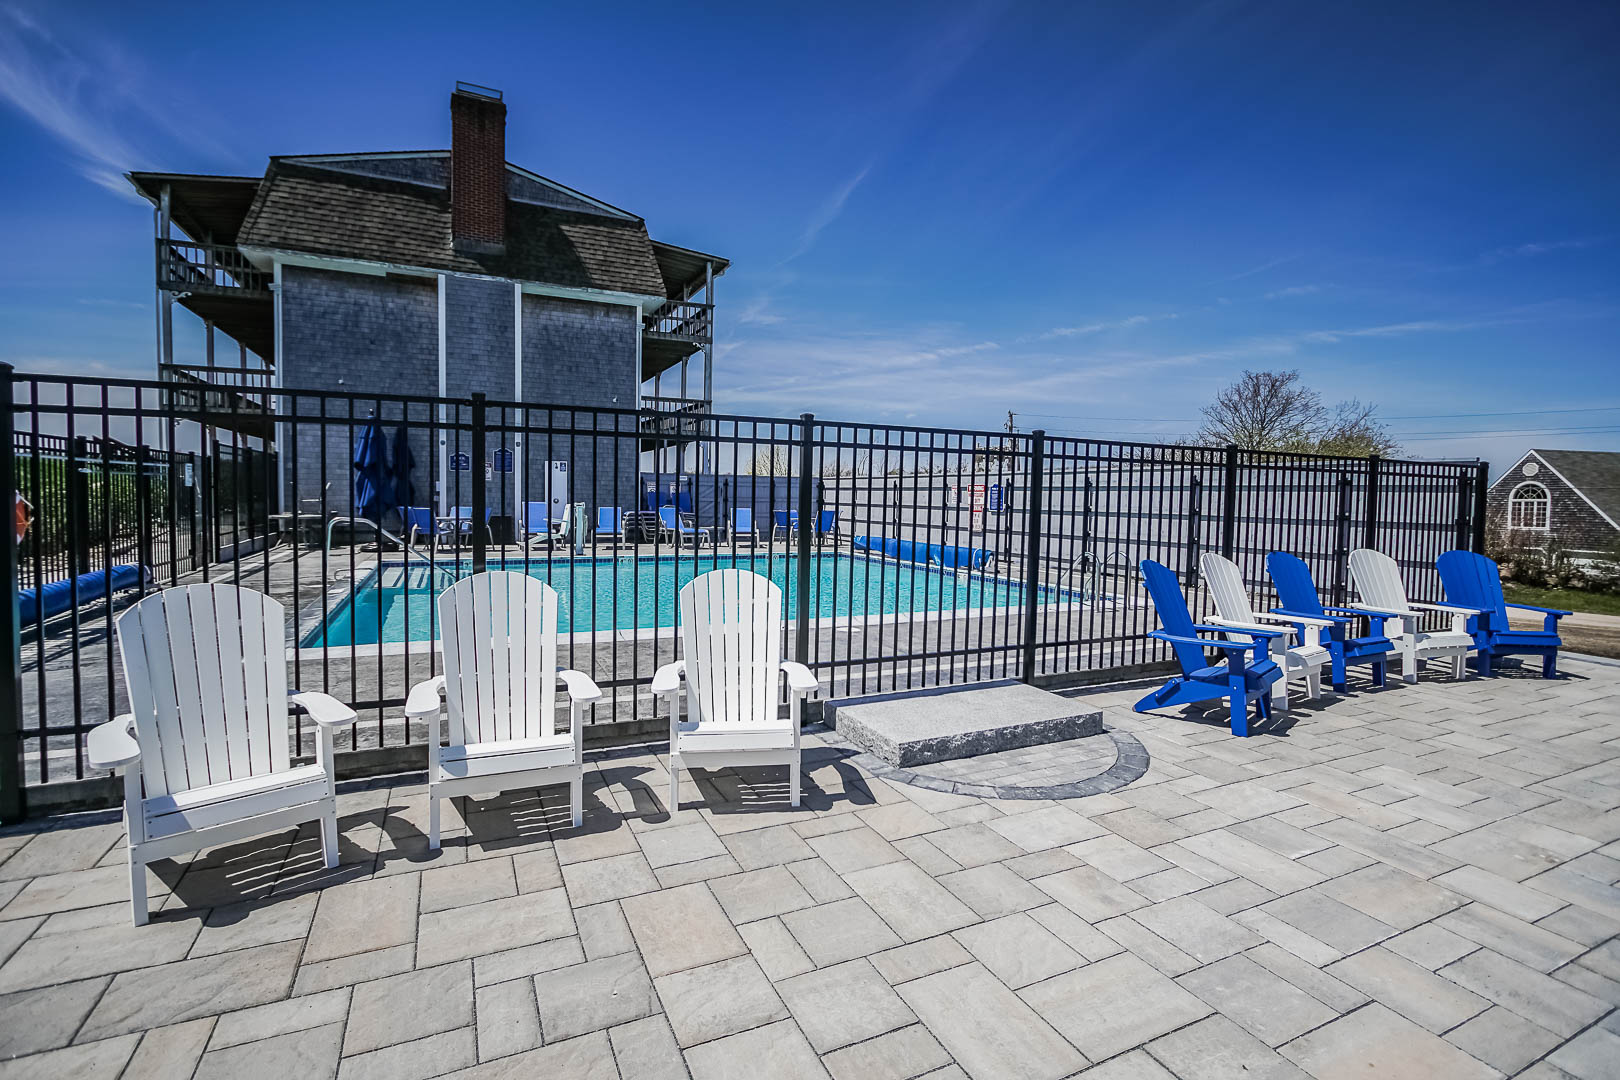 A spacious swimming pool area at VRI's Neptune House Resort in Rhode Island.